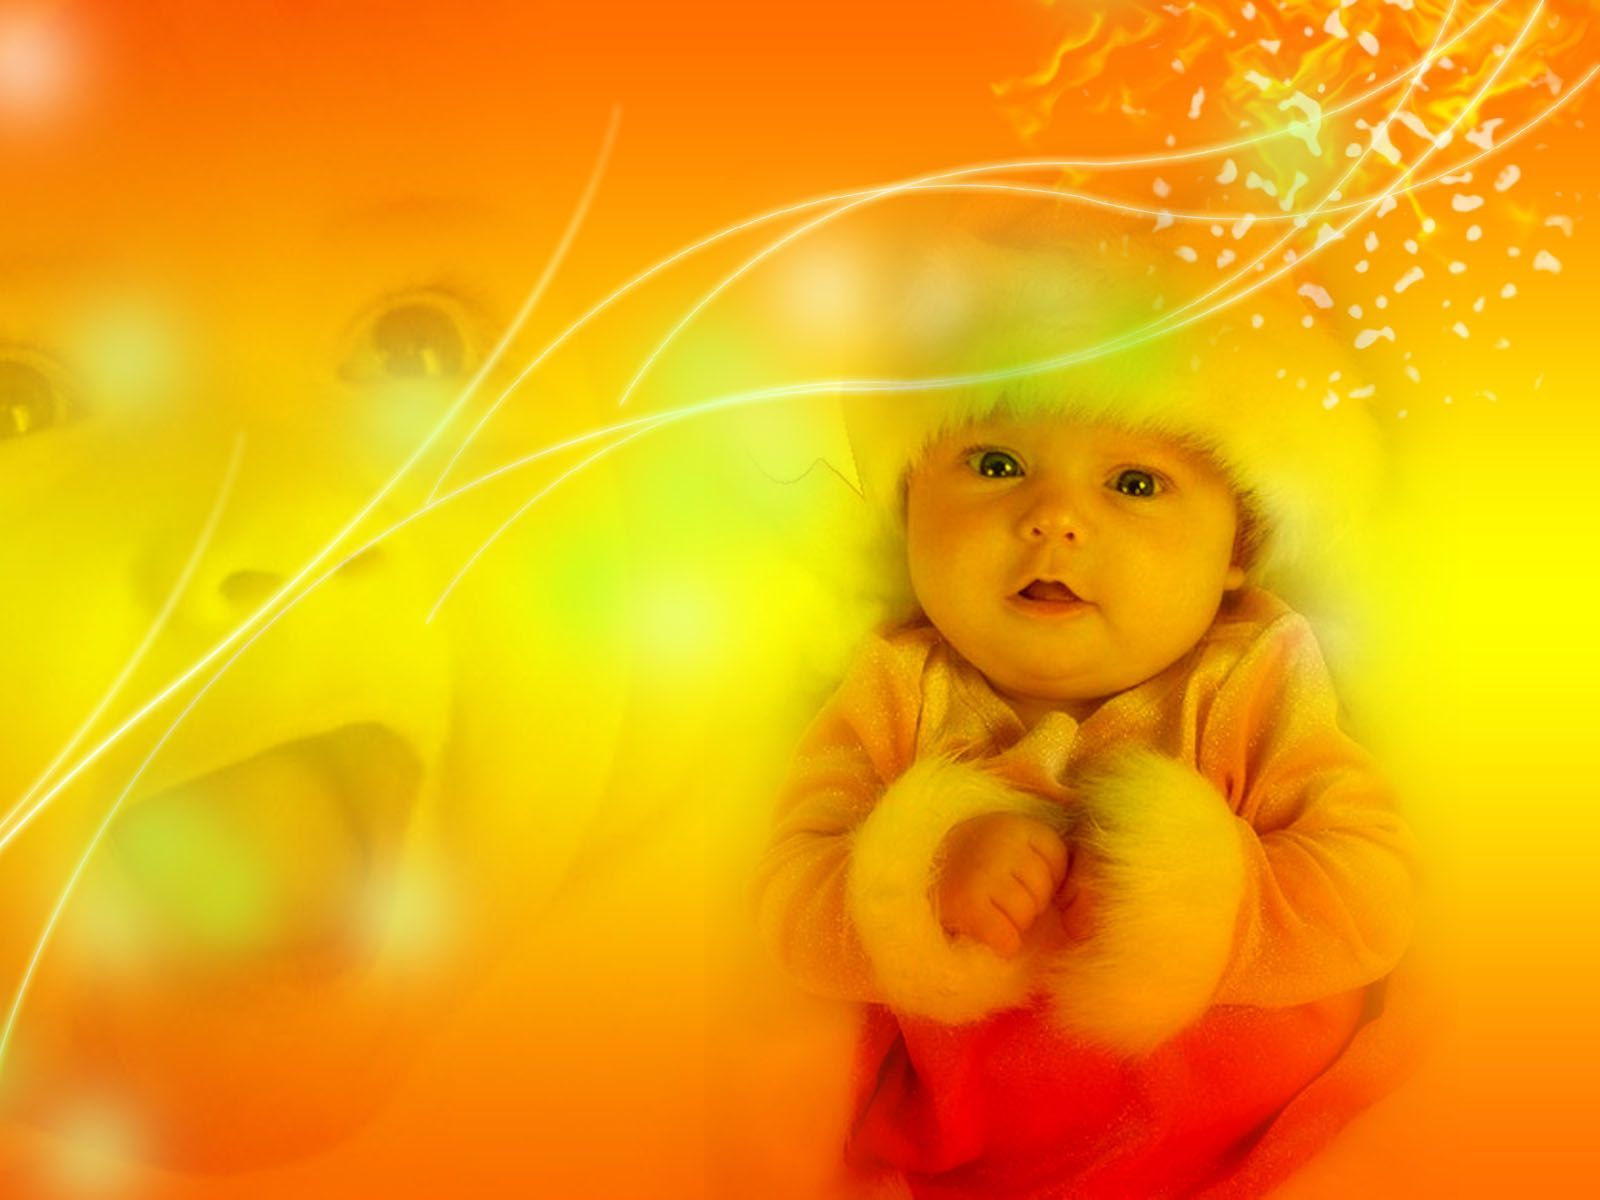 Baby Wallpaper 48 Wallpapers Hd Wallpapers Baby Wallpaper Cute Baby Girl Pictures Expecting Baby